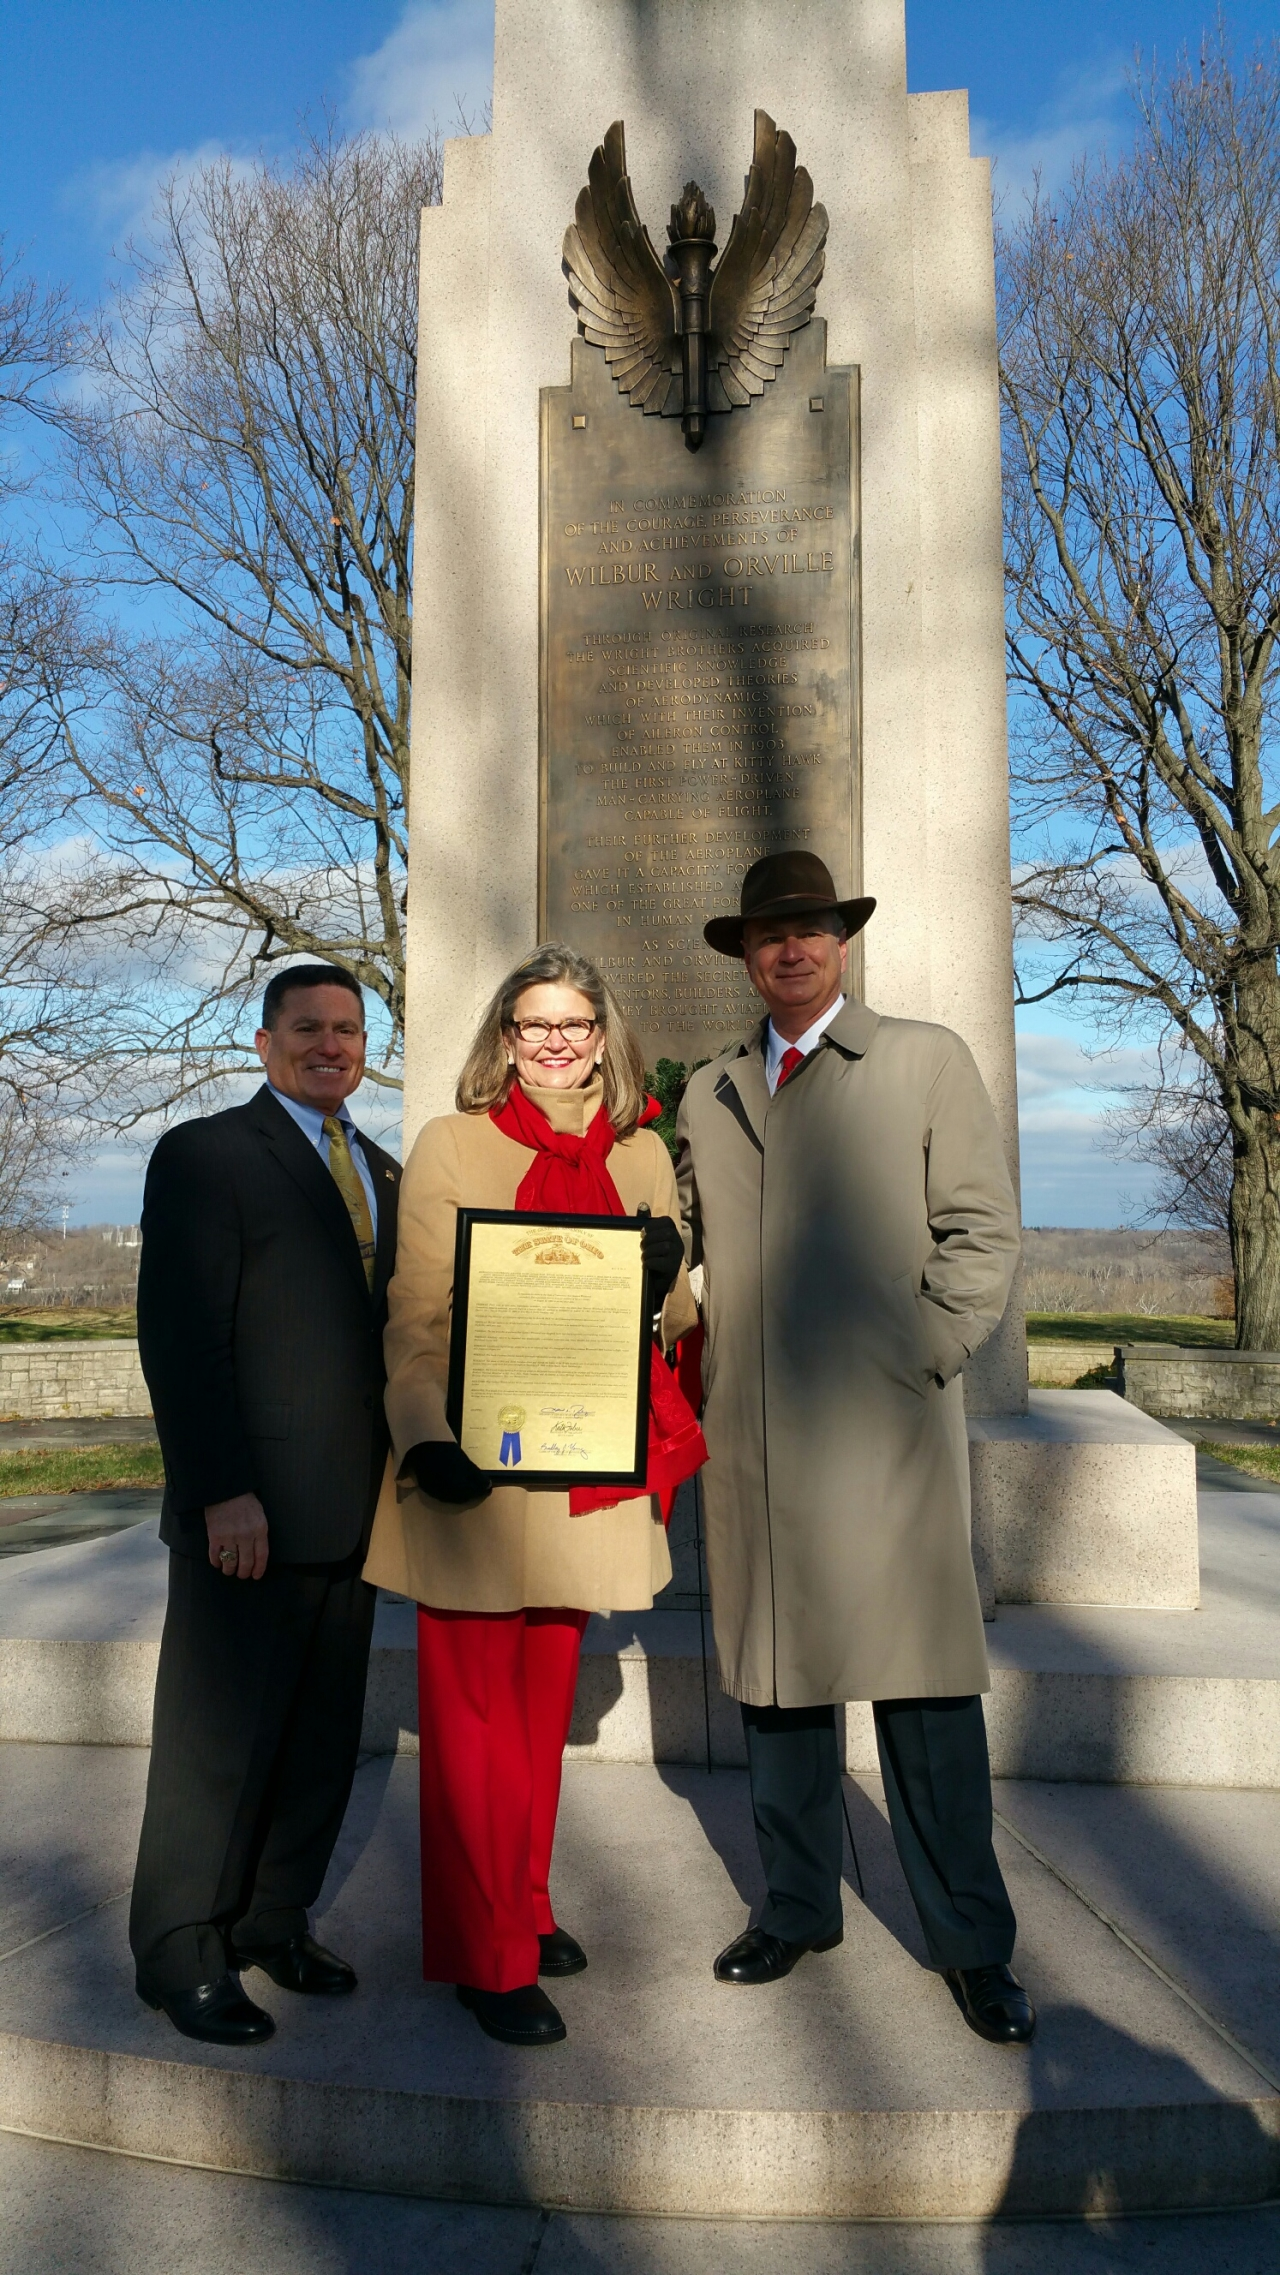 State Rep. Rick Perales Presents Resolution Solidifying Wright Brothers' Place in History